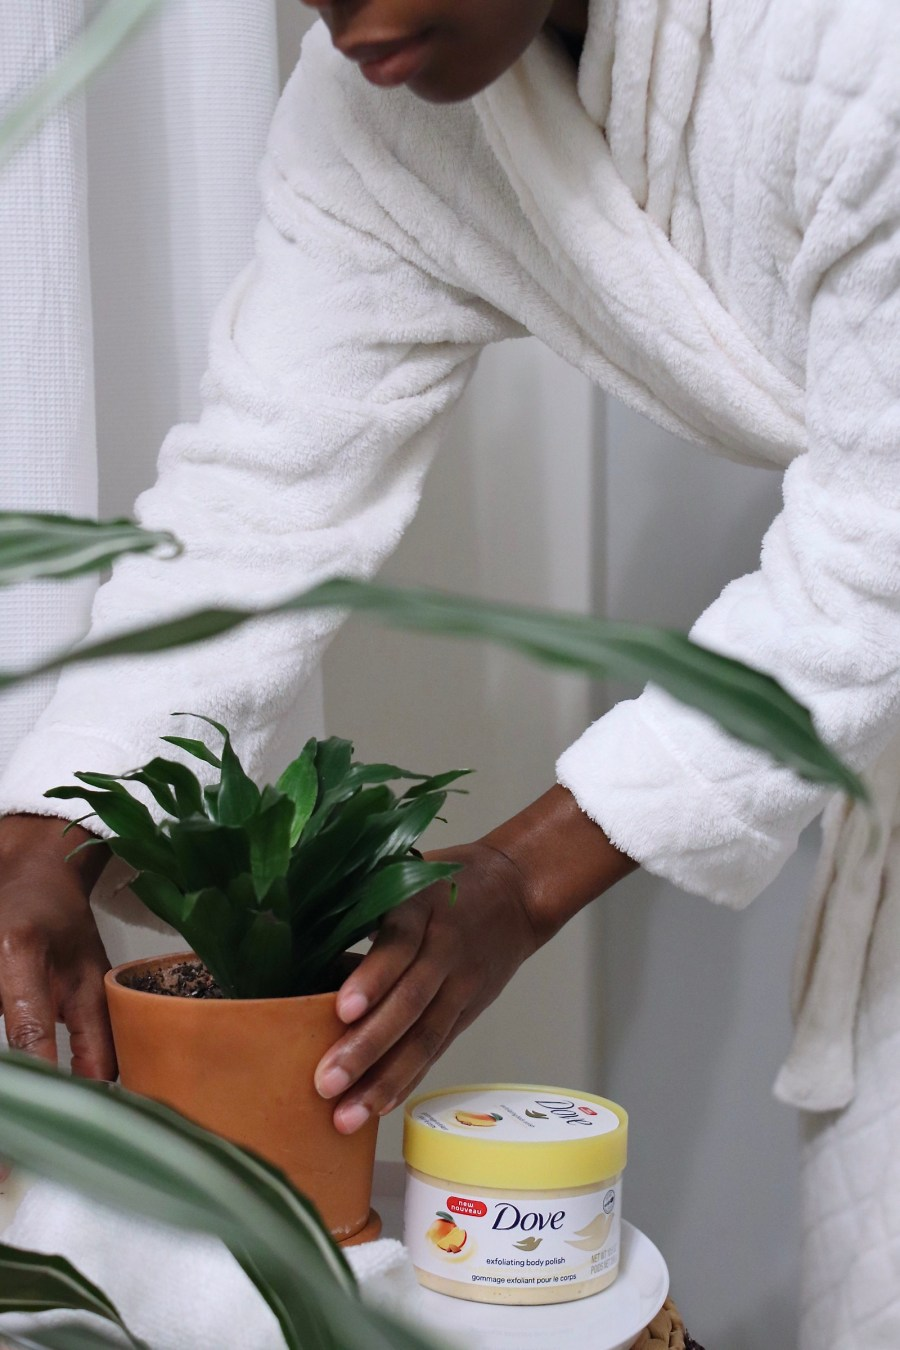 Top 5 Items To Include in a Relaxing Spa Gift Kit